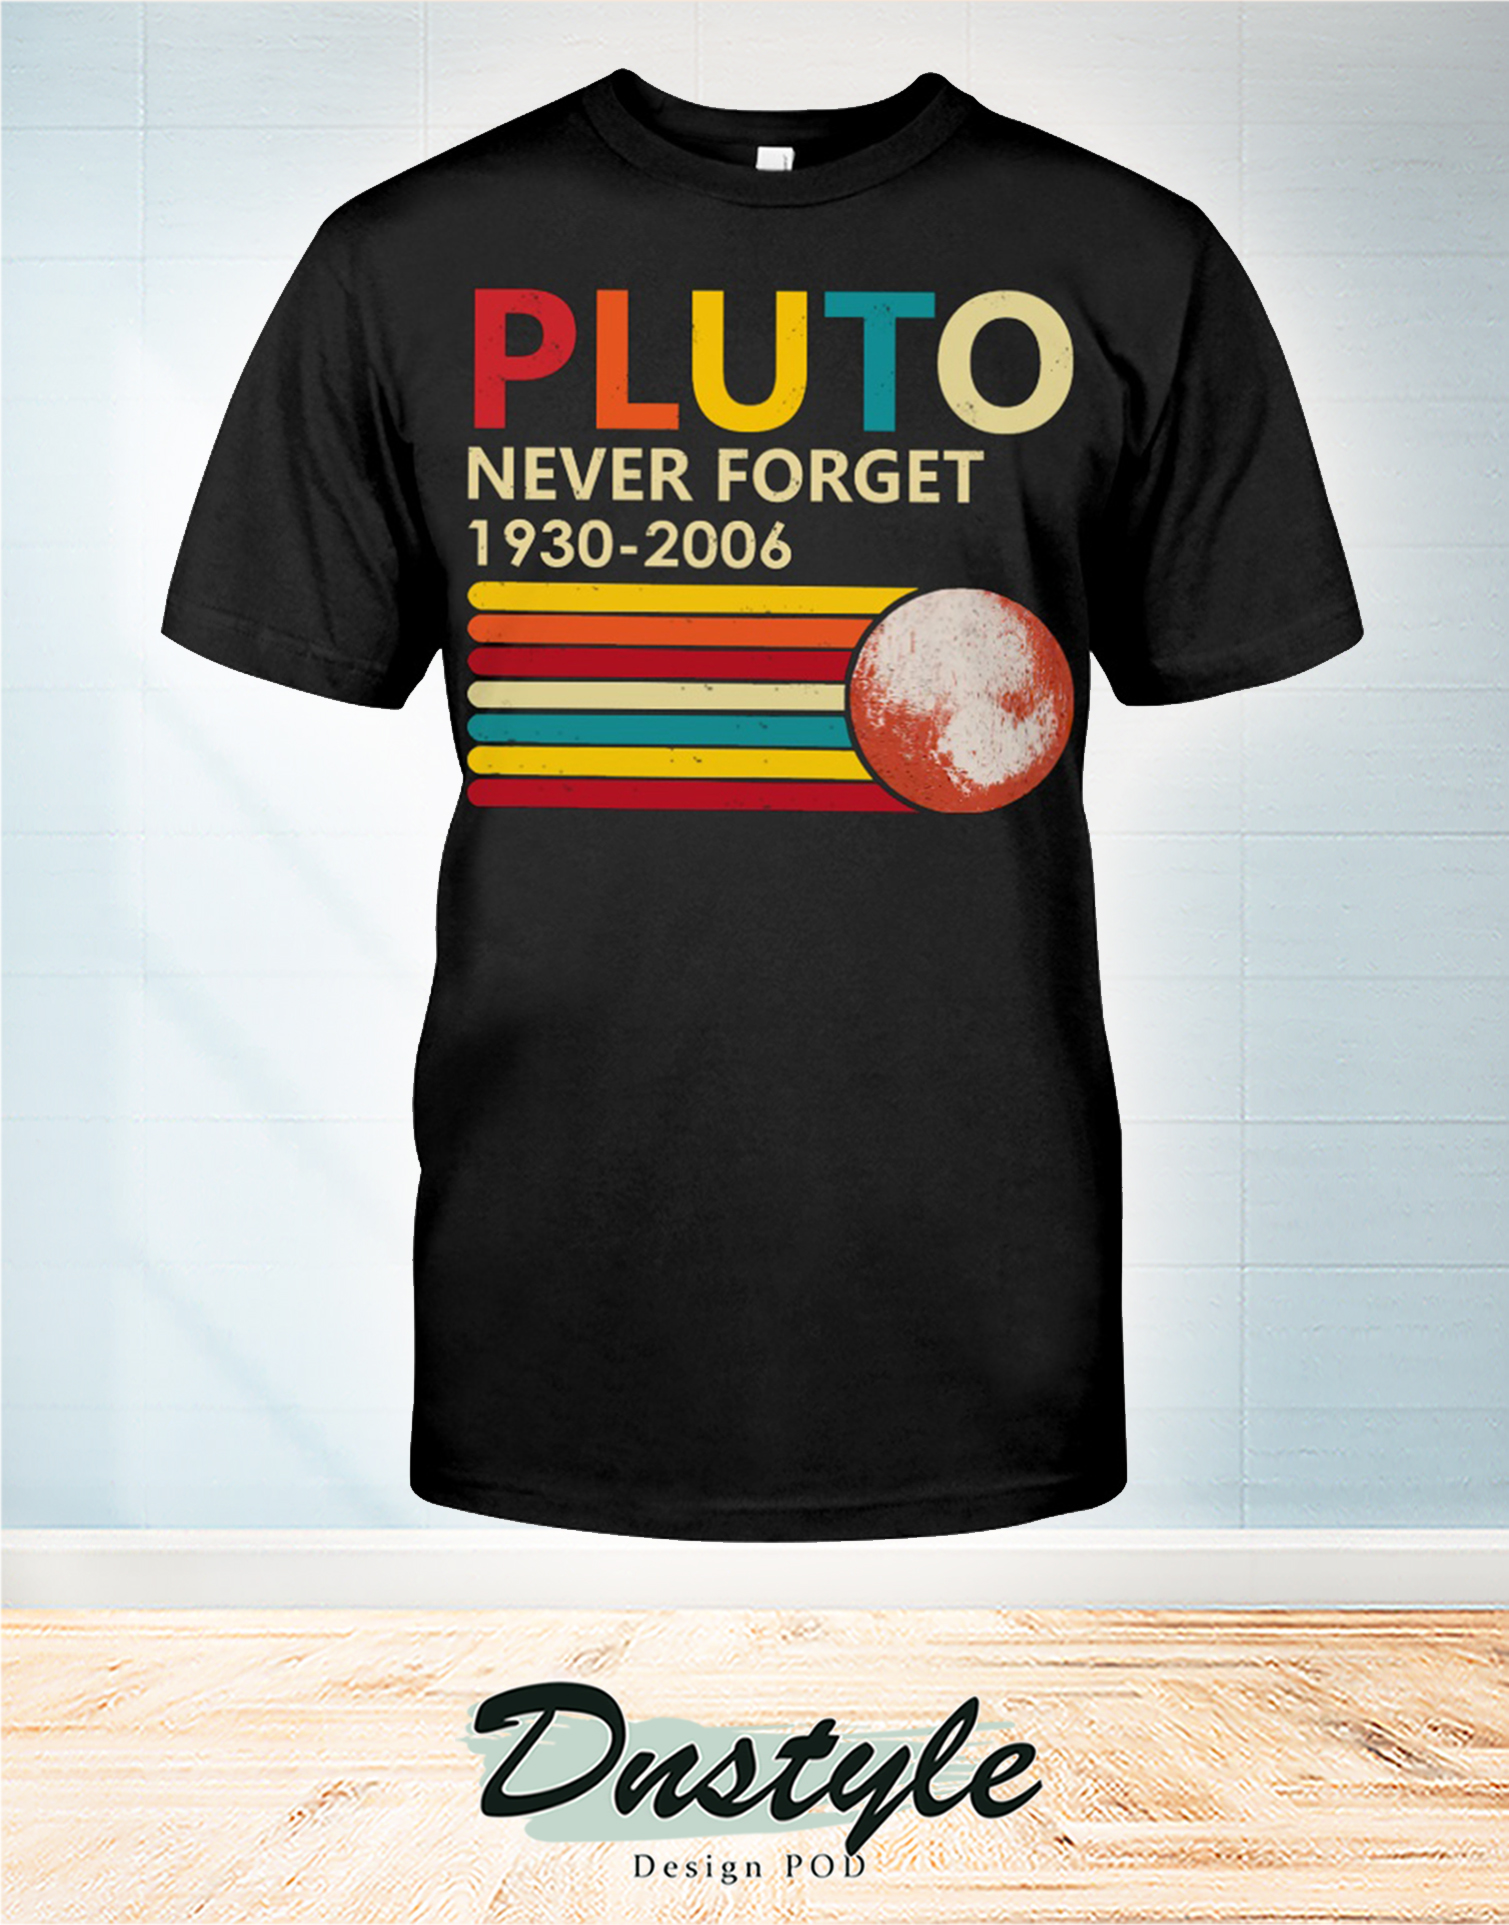 Pluto never forget 1930 - 2006 t-shirt